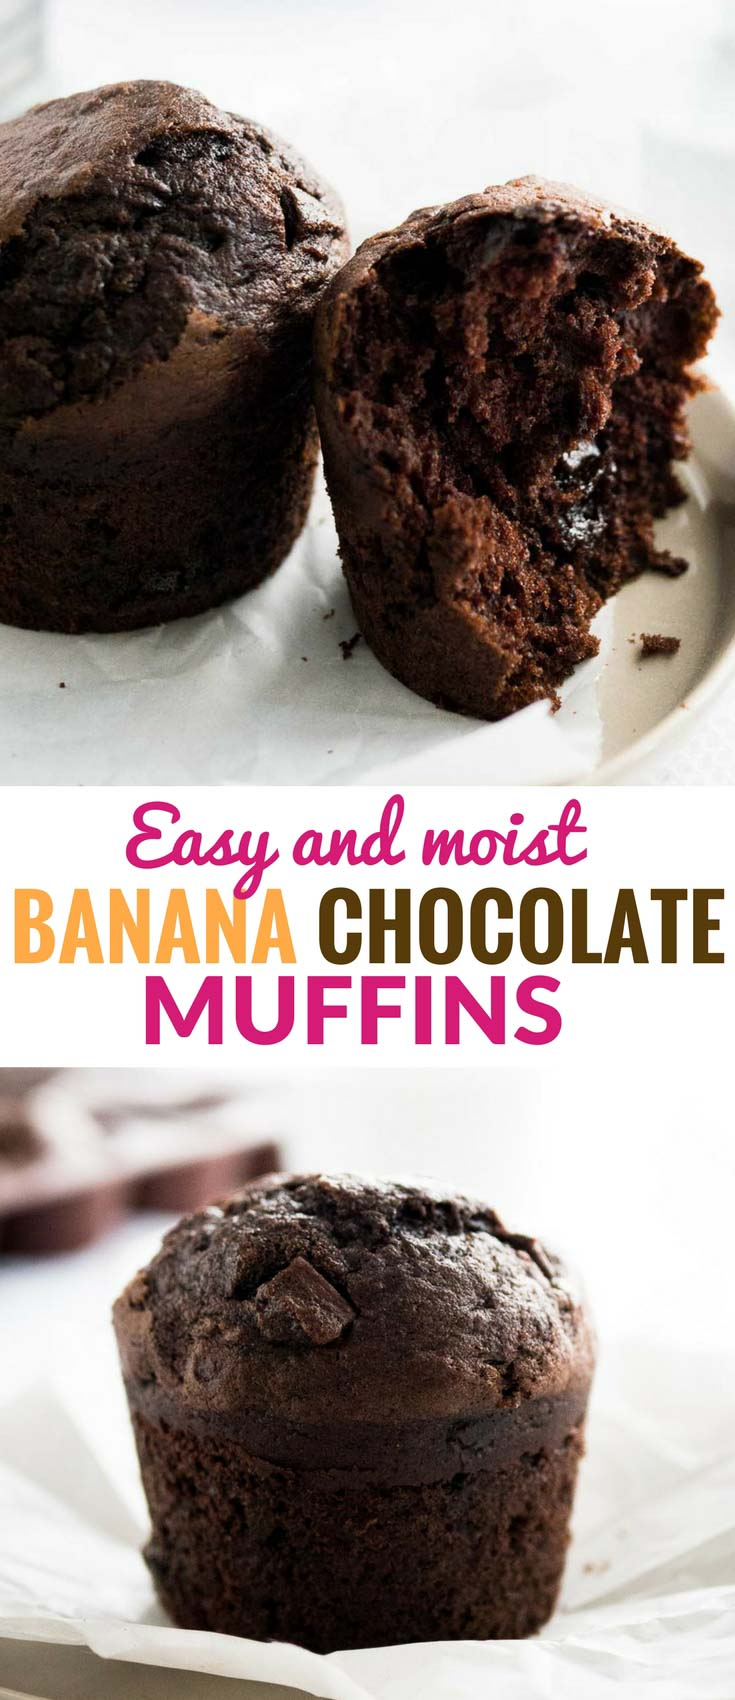 Chocolate Banana Muffins are so easy to make from scratch with just the right balance of chocolate and banana flavor! This easy bakery-style muffin recipeis loaded with chocolate and makes fluffy and moist muffins that make a great snack or breakfast.